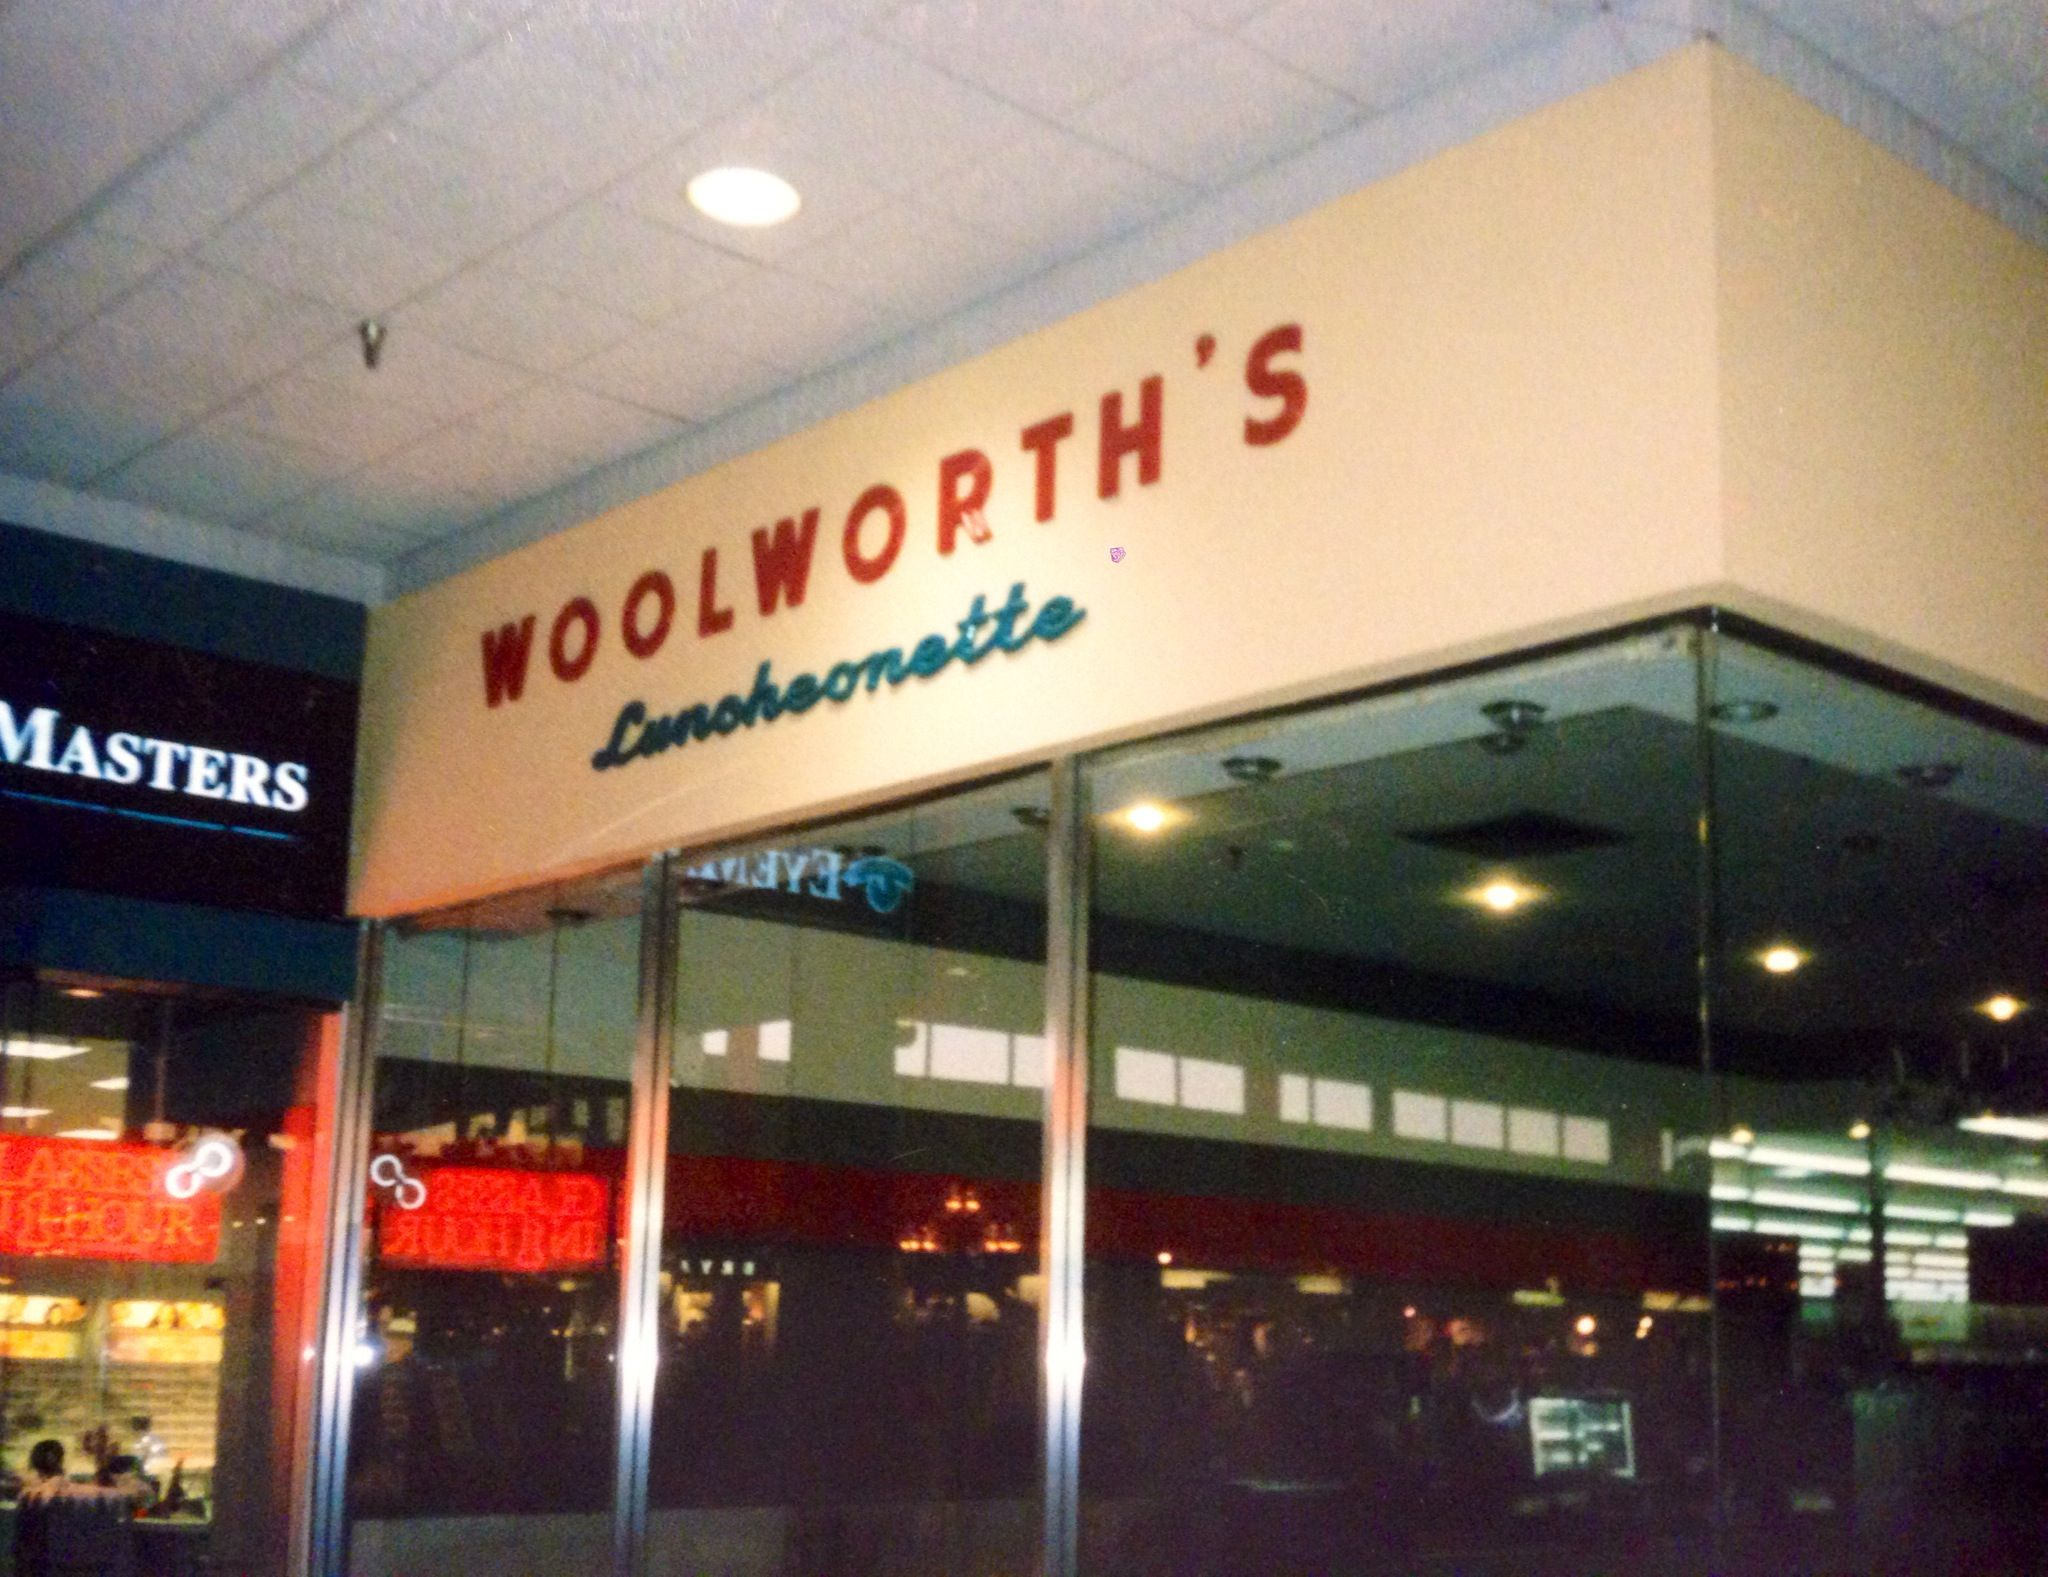 Woolworth S Luncheonette Sign On Storefront Inside The Mall Corridor At East Hills Mall In St Joseph Mo When Stand Vintage Mall Home Goods Decor St Louis Mo